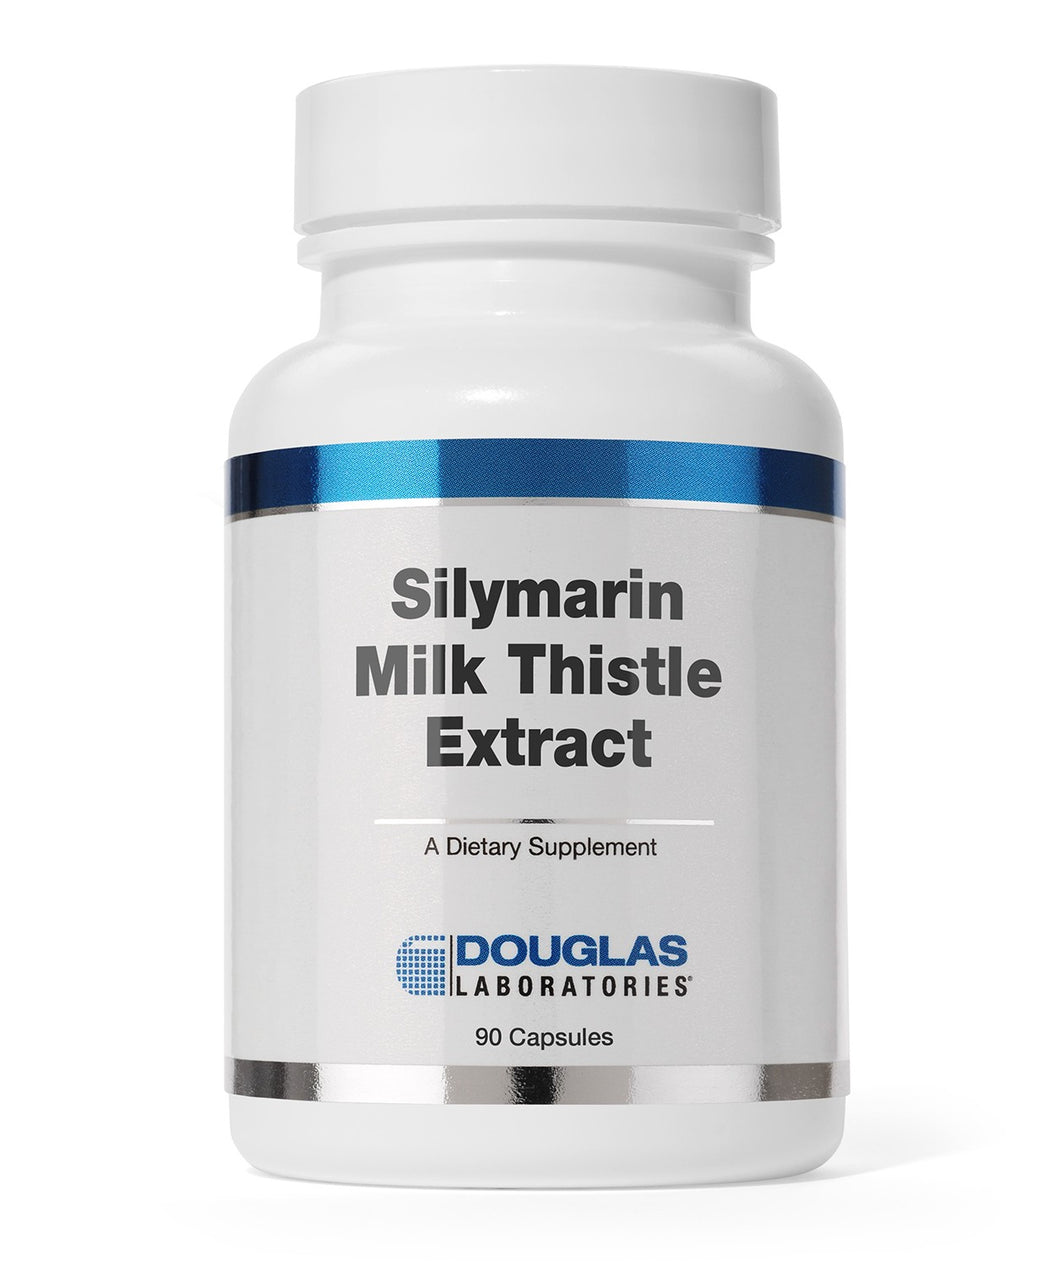 Silymarin/Milk Thistle Extract 60 Capsules Douglas Laboratories